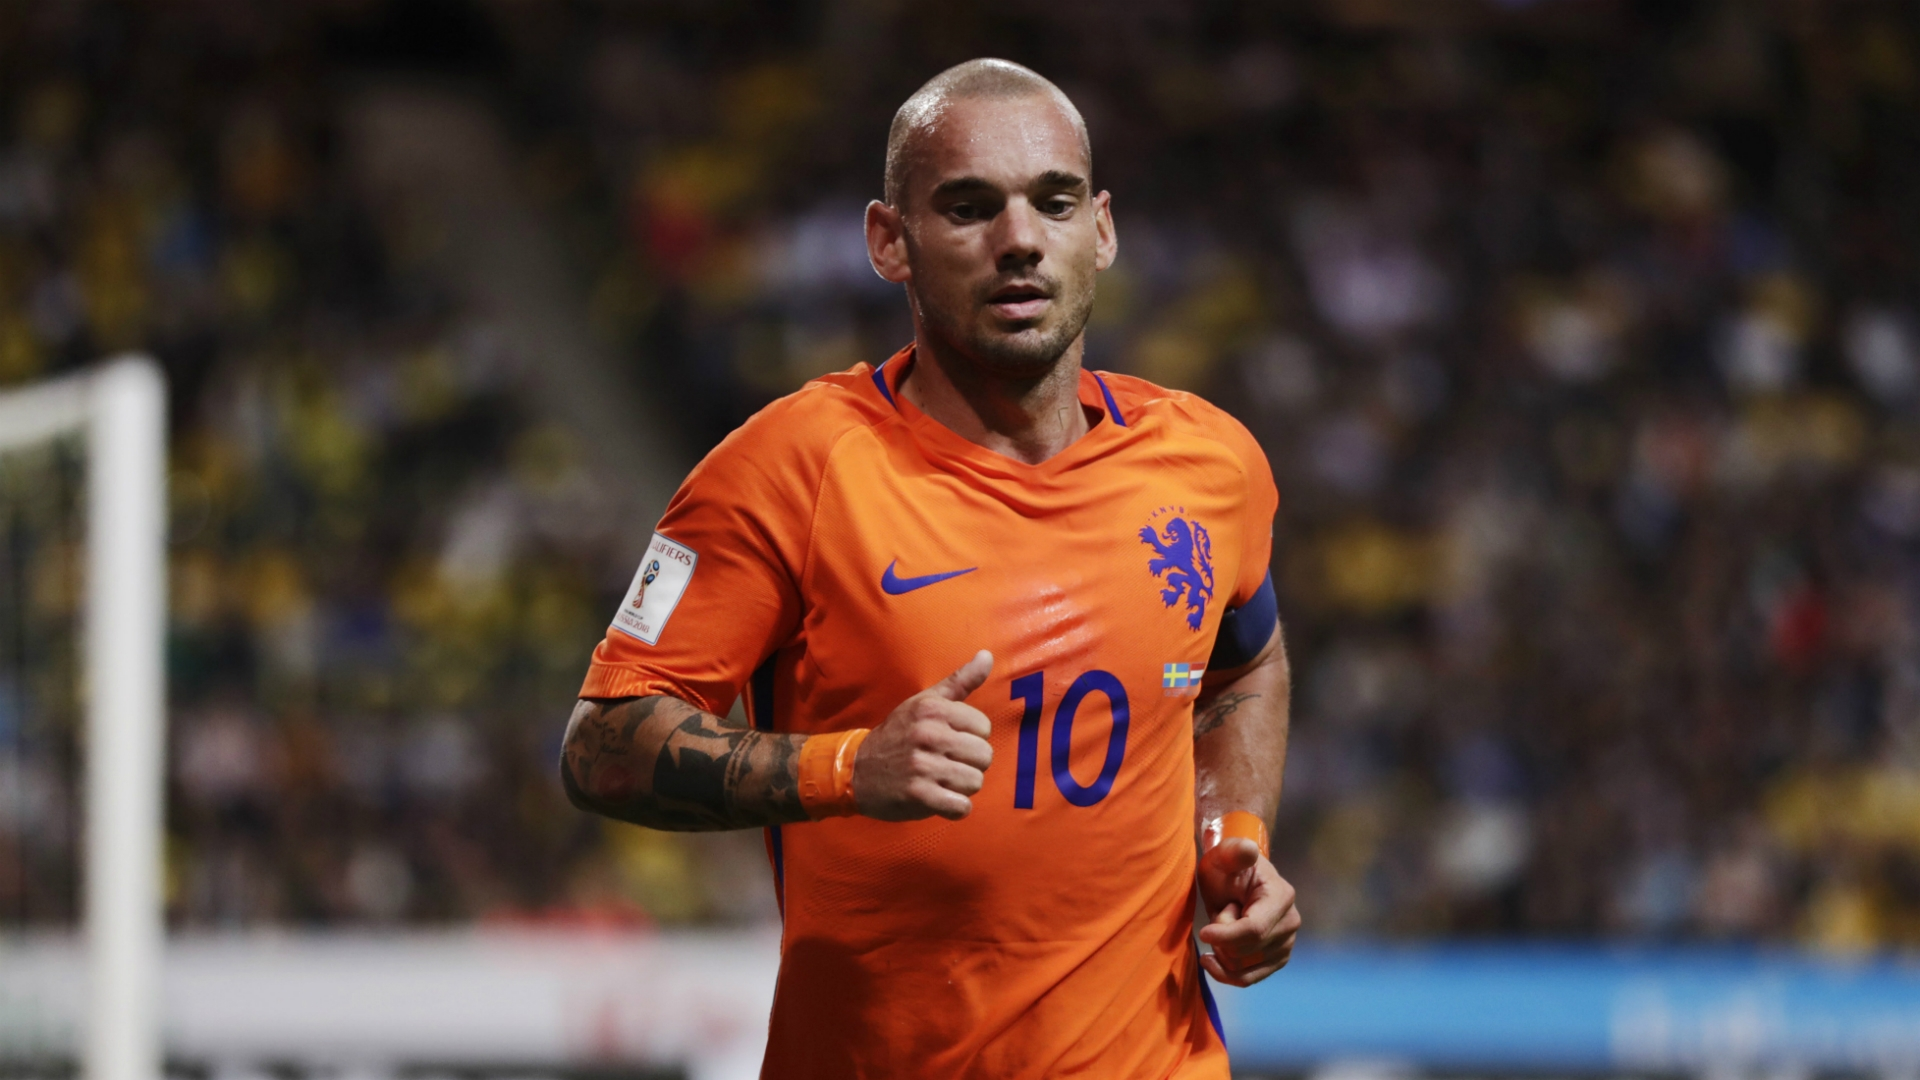 Sneijder needs to help Holland move up from fourth place in their WC qualifiers group